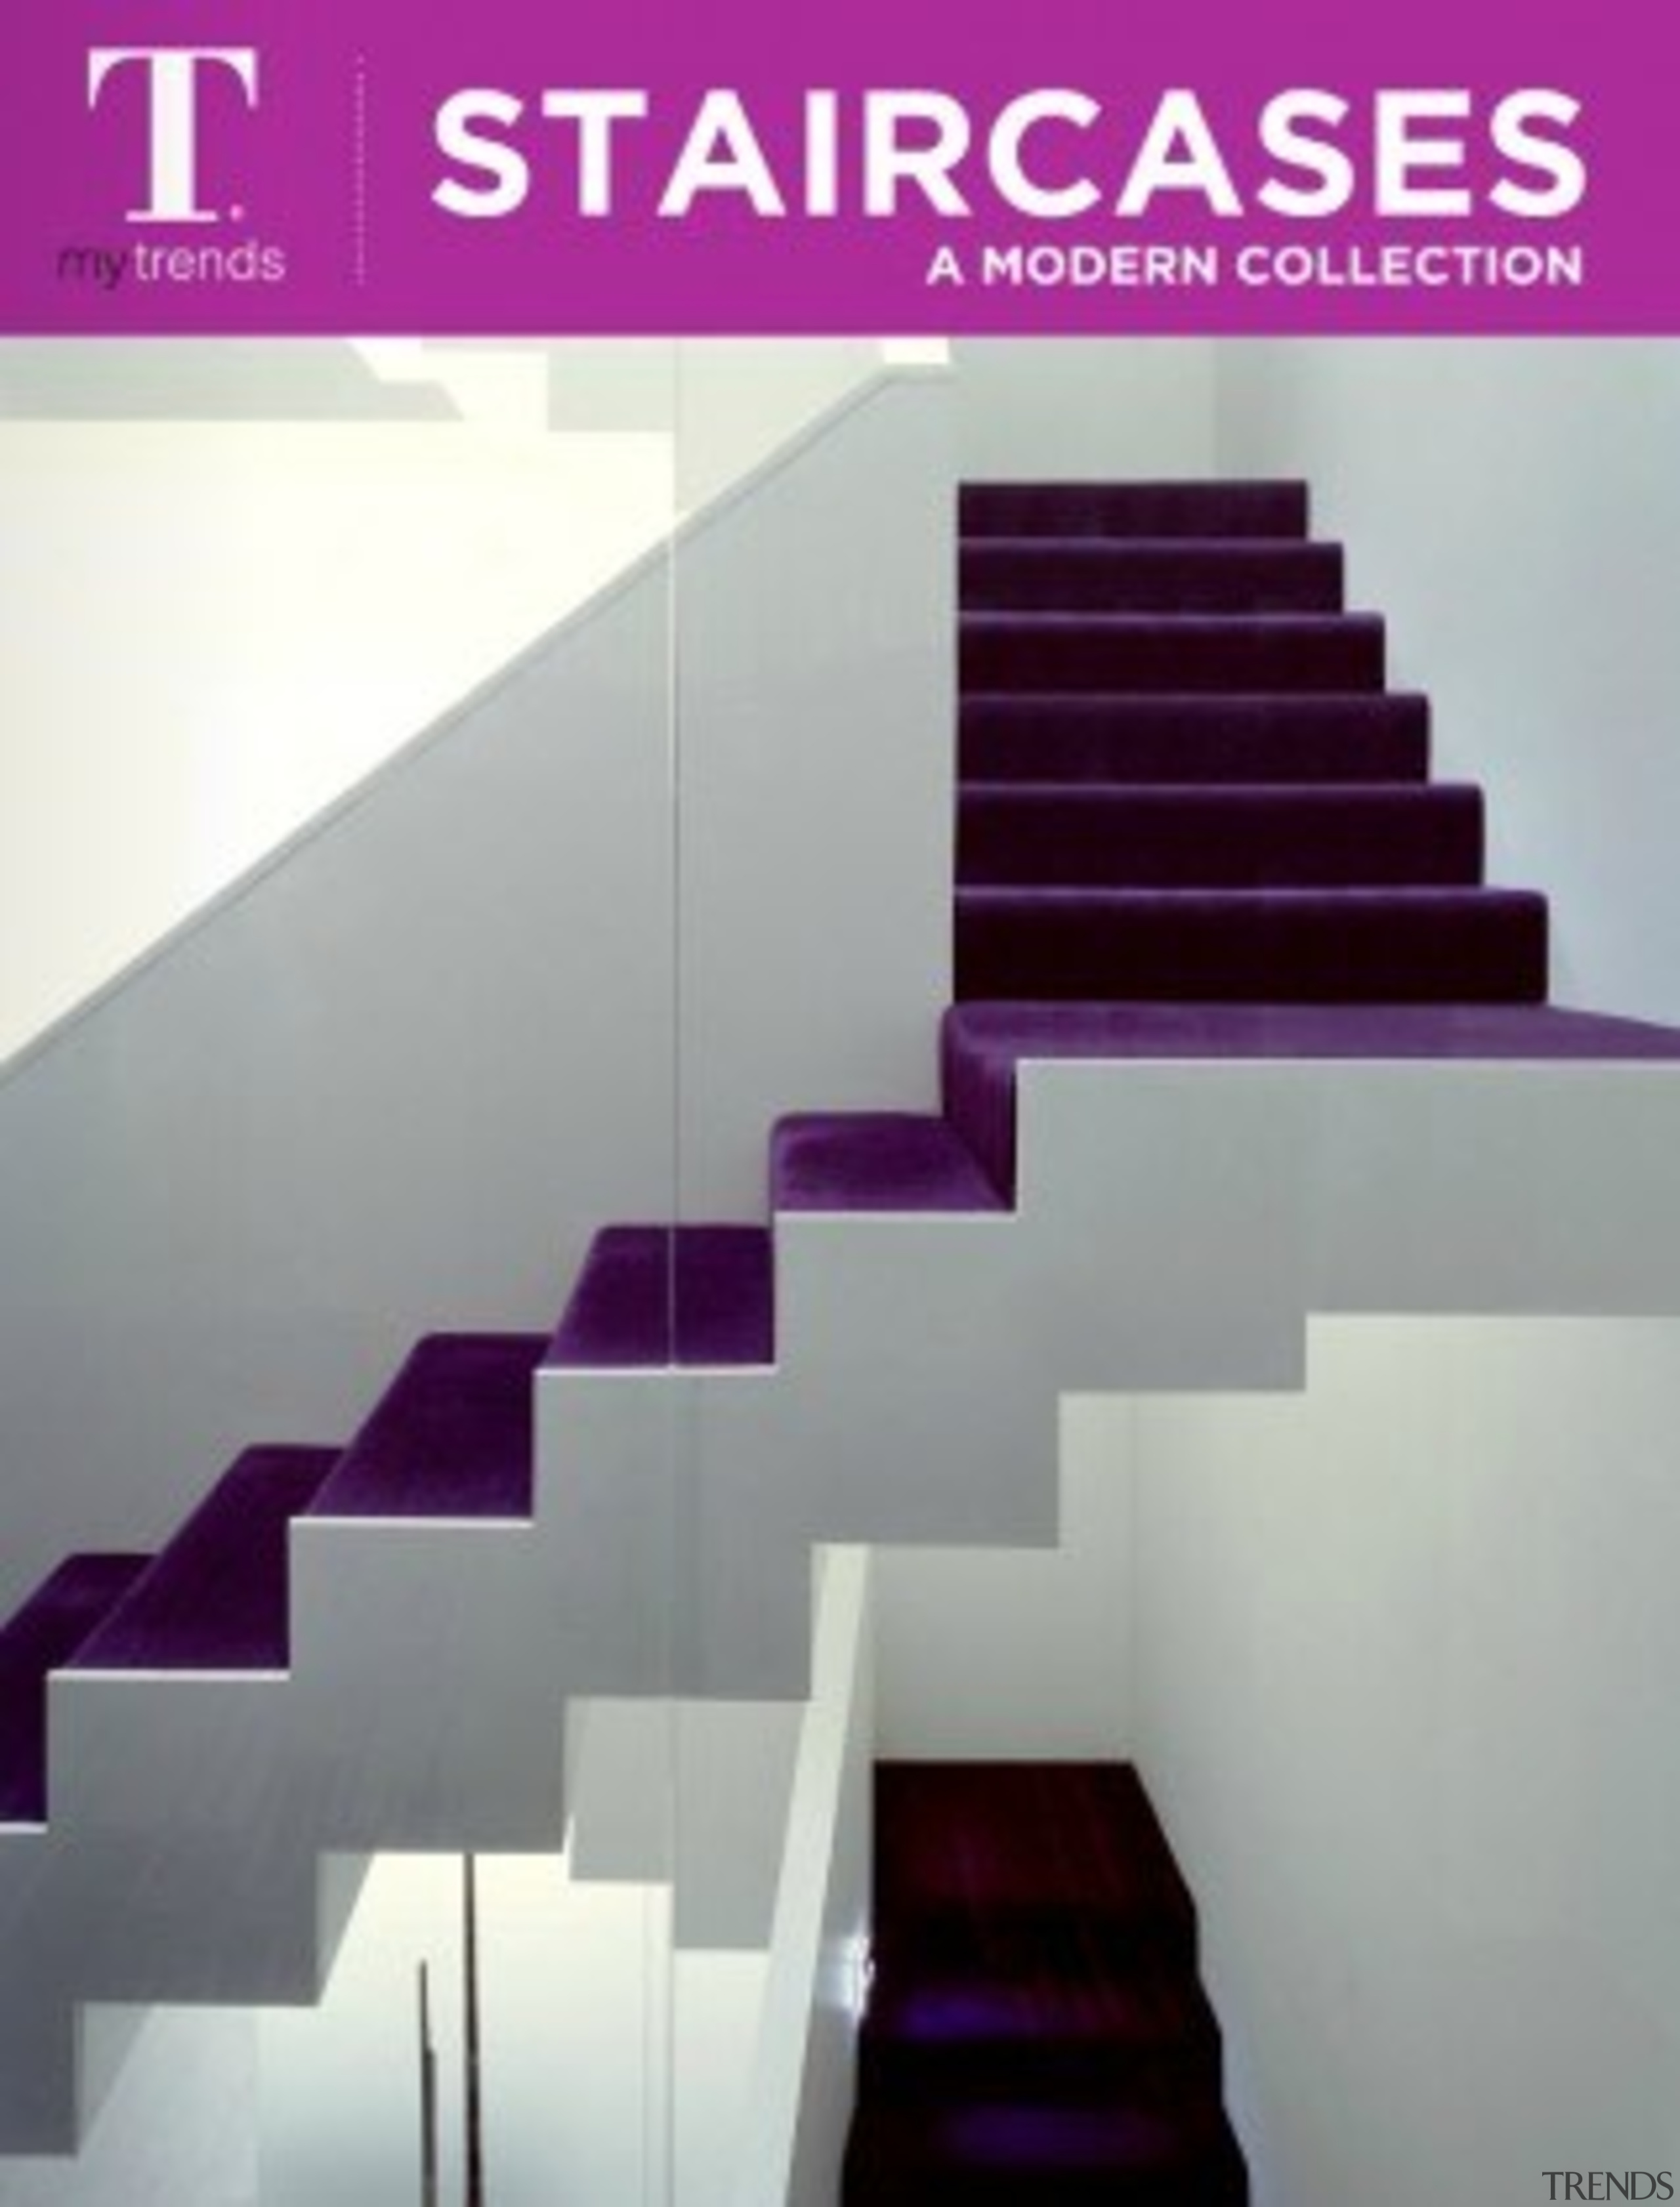 Modern Staircases architecture, purple, stairs, gray